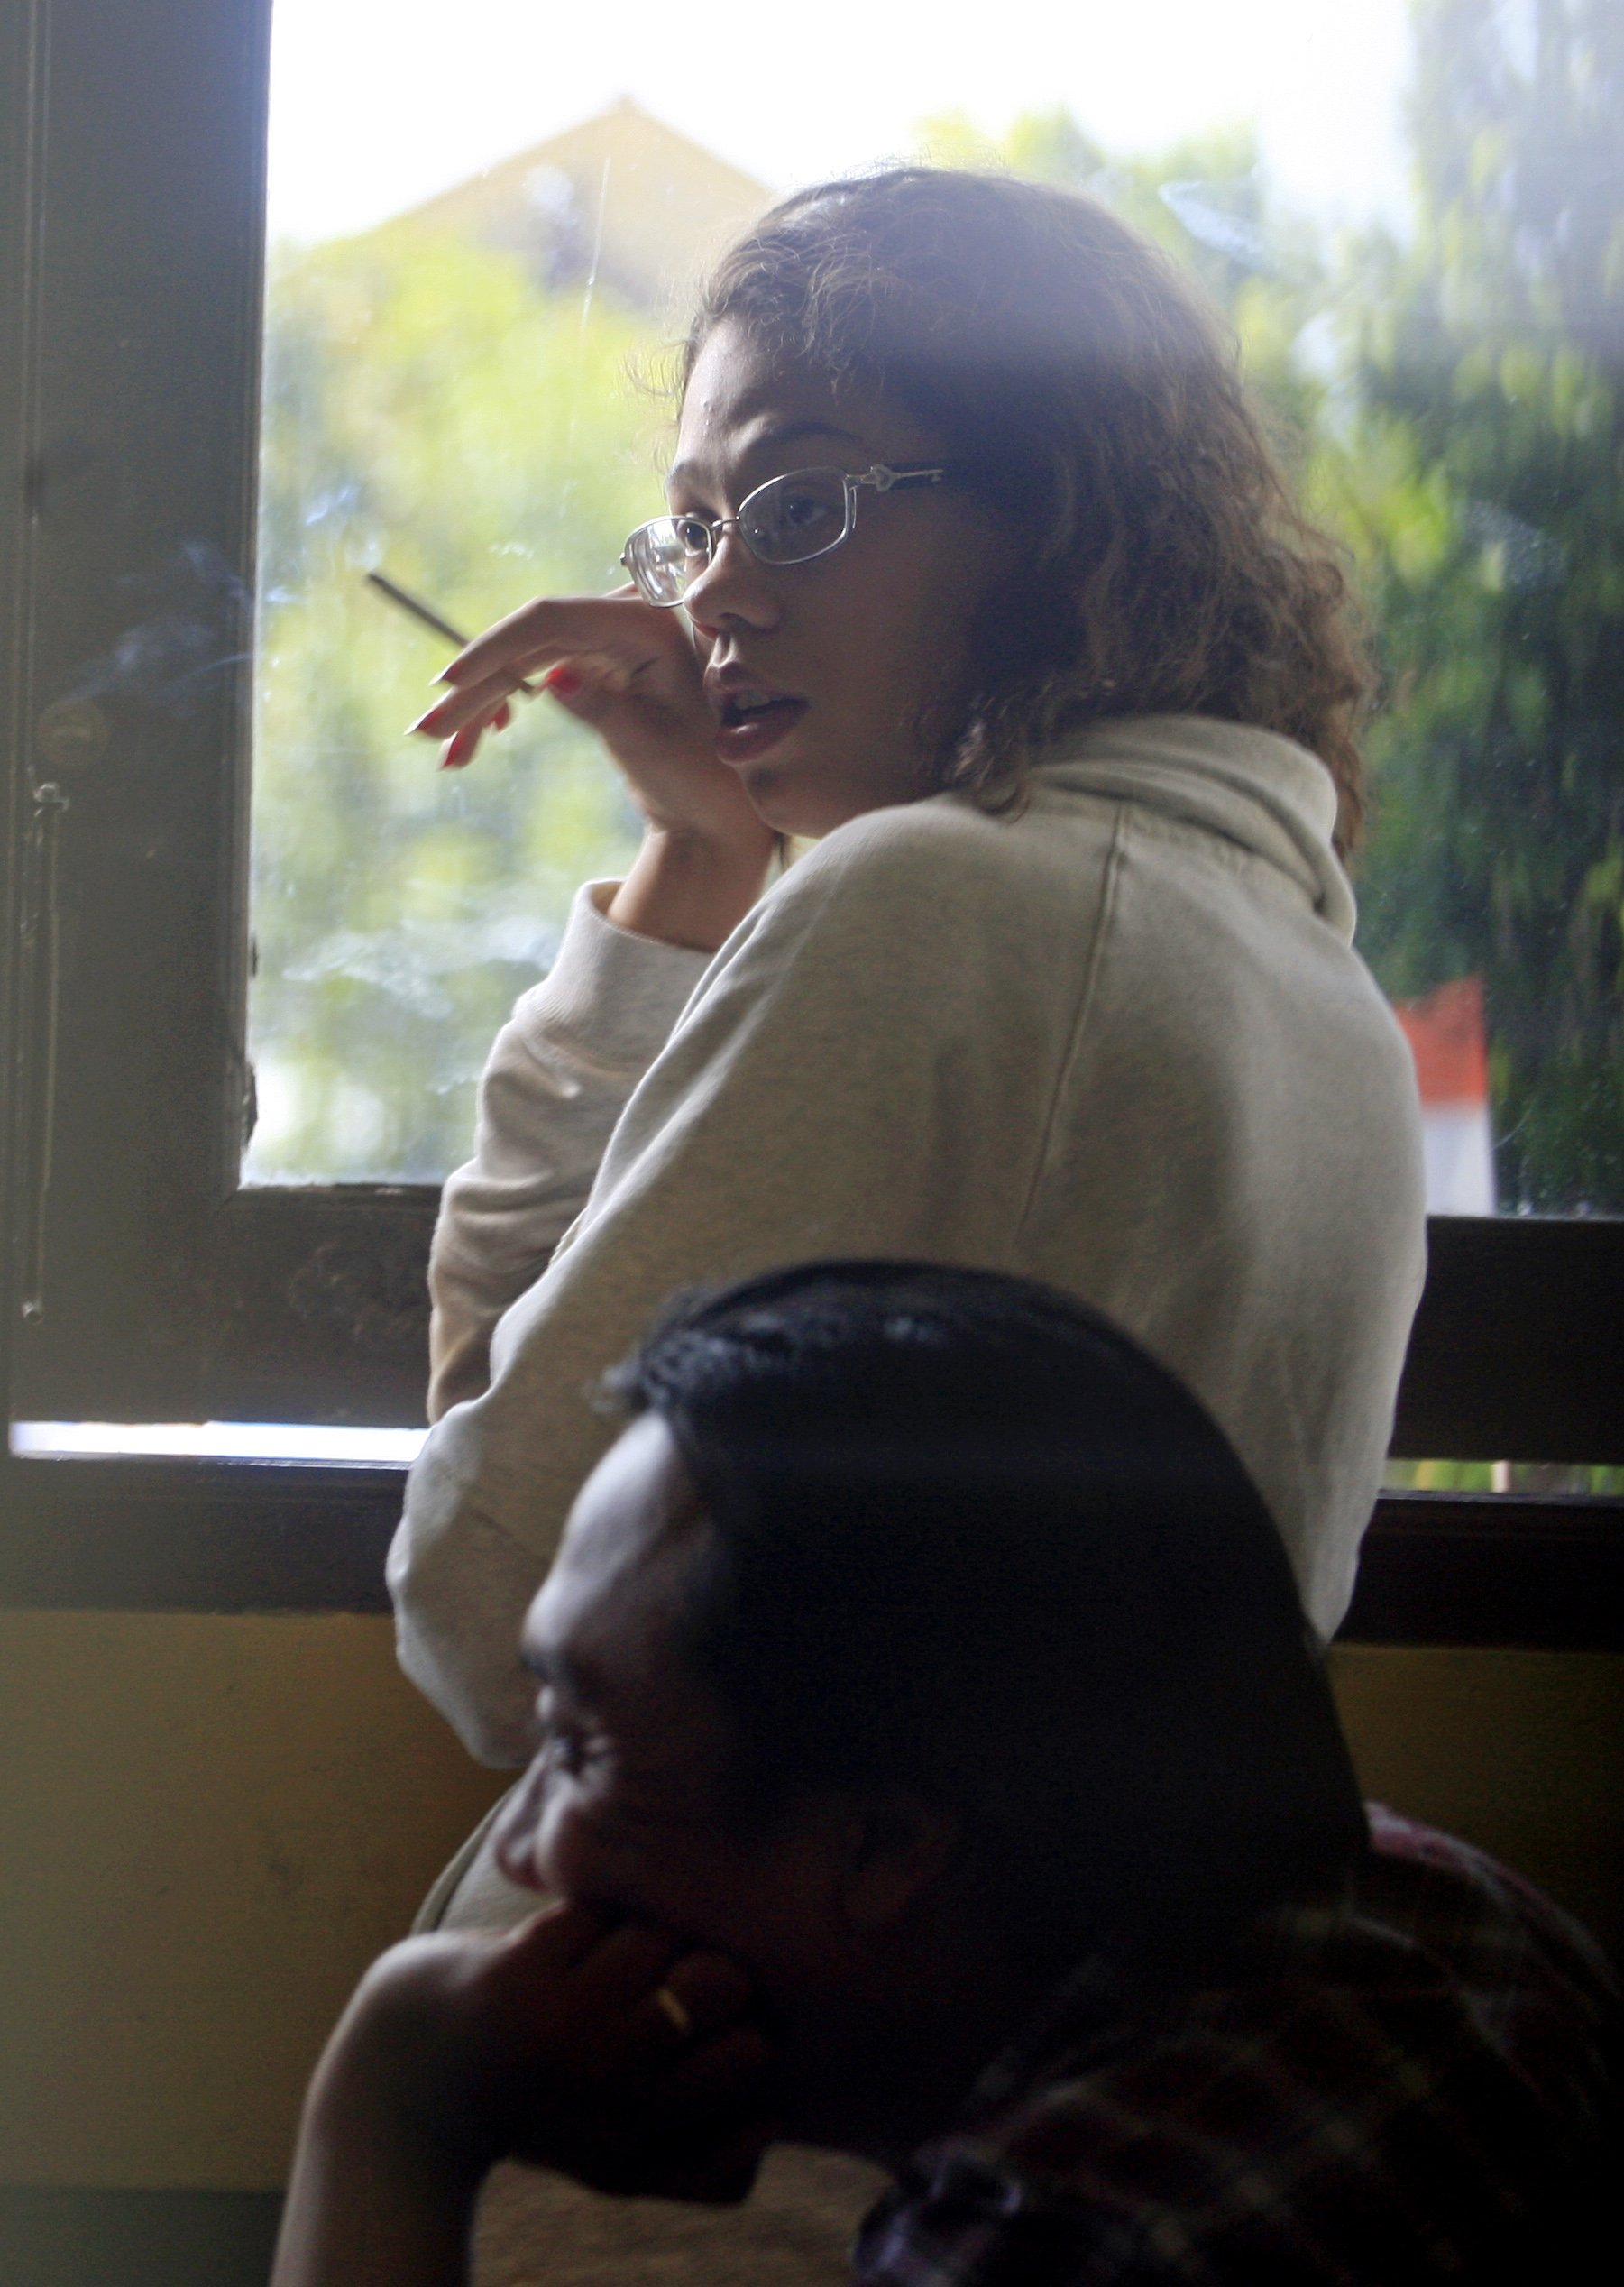 Heather Mack, stands at the police district headquarters after she was brought in for questioning in relation to the death of her mother, in Bali, Indonesia on Aug. 14, 2014.